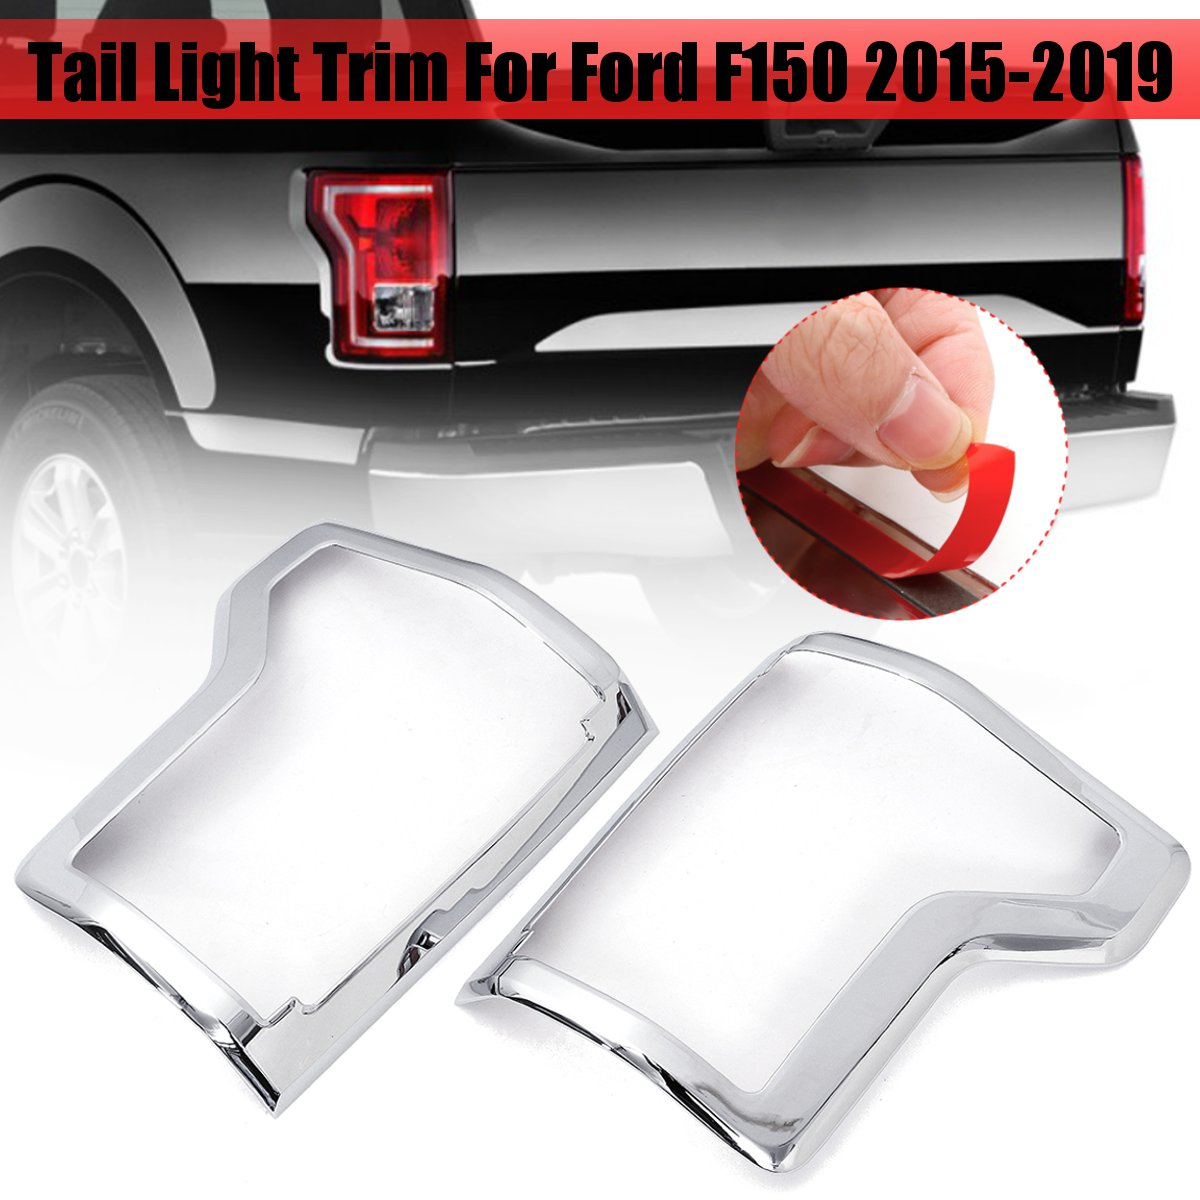 Car Exterior Accessories Pair ABS Chrome Rear Tail Light Lamp Frame Cover Trims For Ford F150 2015 2016 2017 2018 2019  Car Exterior Accessories Pair ABS Chrome Rear Tail Light Lamp Frame Cover Trims For Ford F150 2015 2016 2017 2018 2019